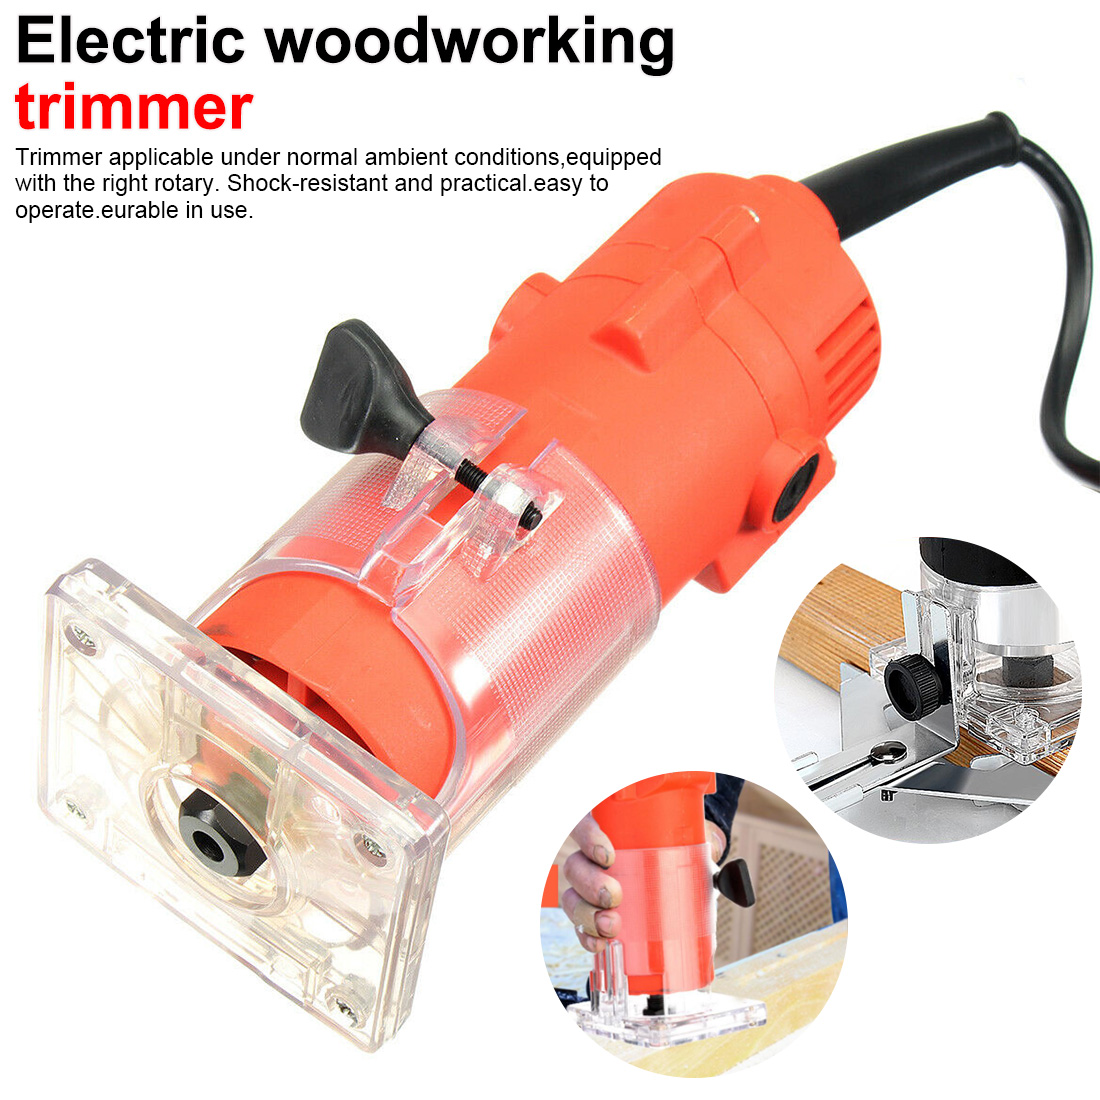 Electric Trimmer Wood Tool 220V 110V 1300W Wood Laminate Router 30000rpm Trimming Carving Milling Machine For Woodworking